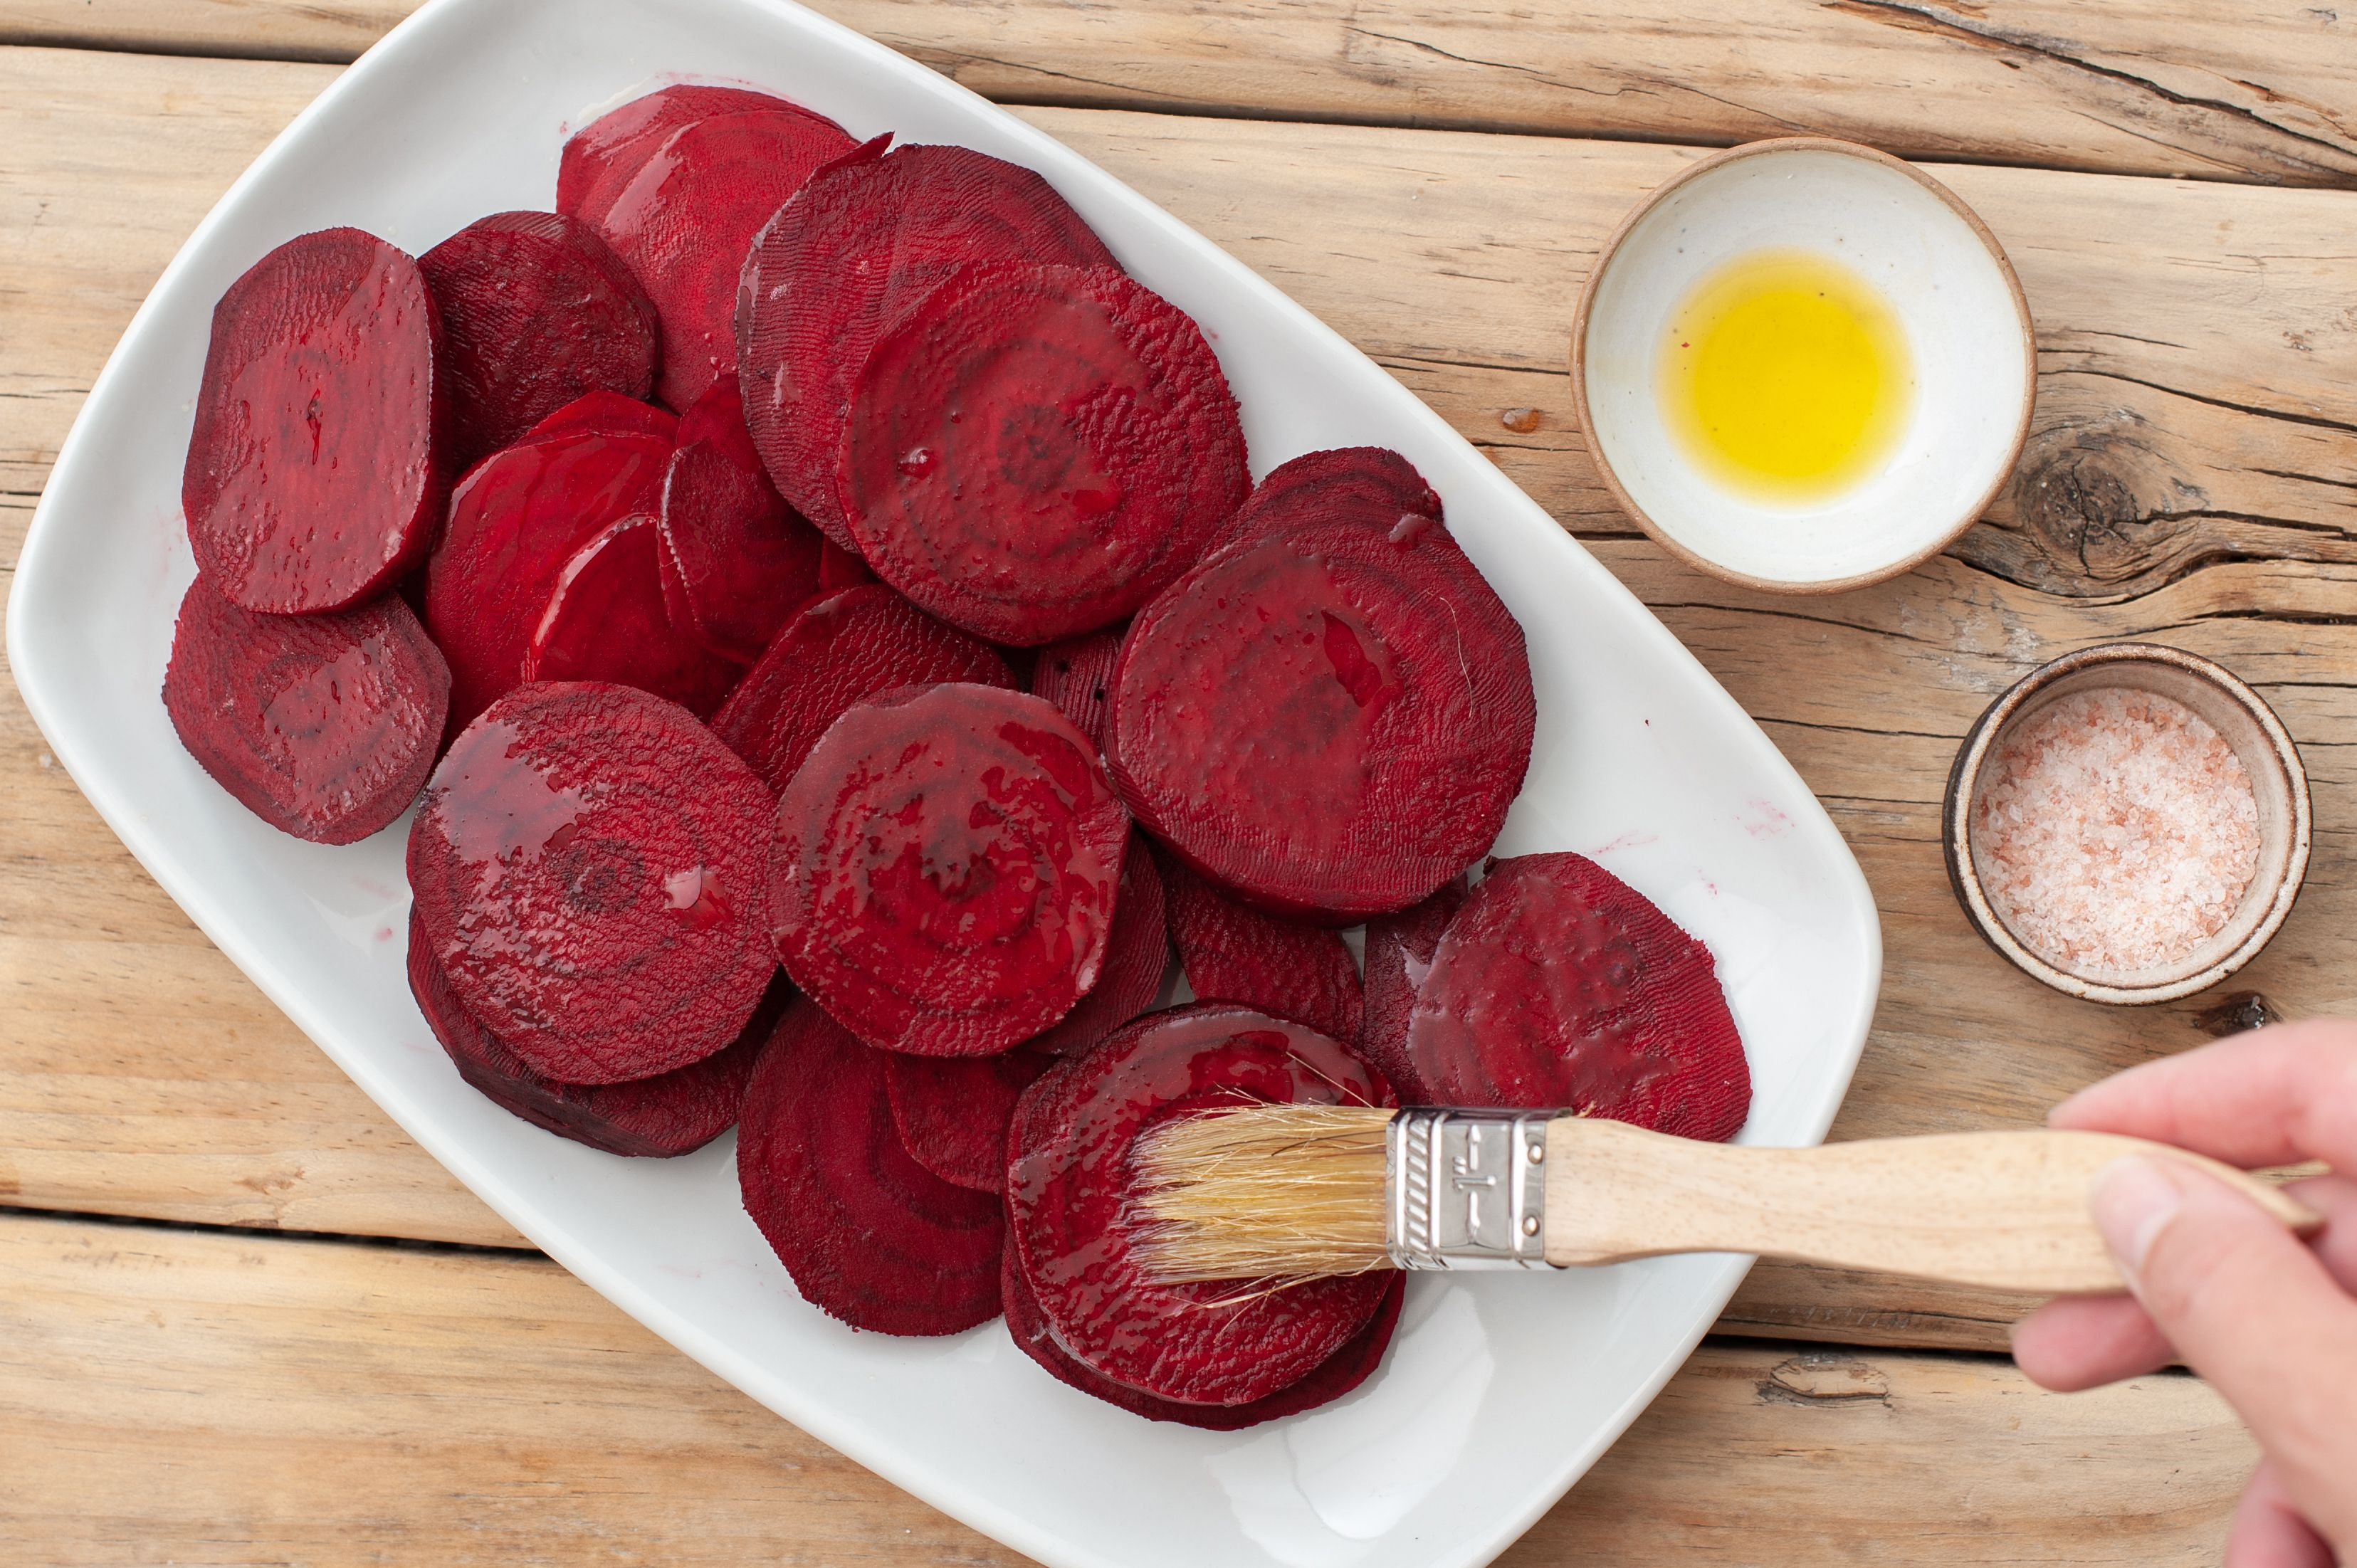 Beets brushed with olive oil